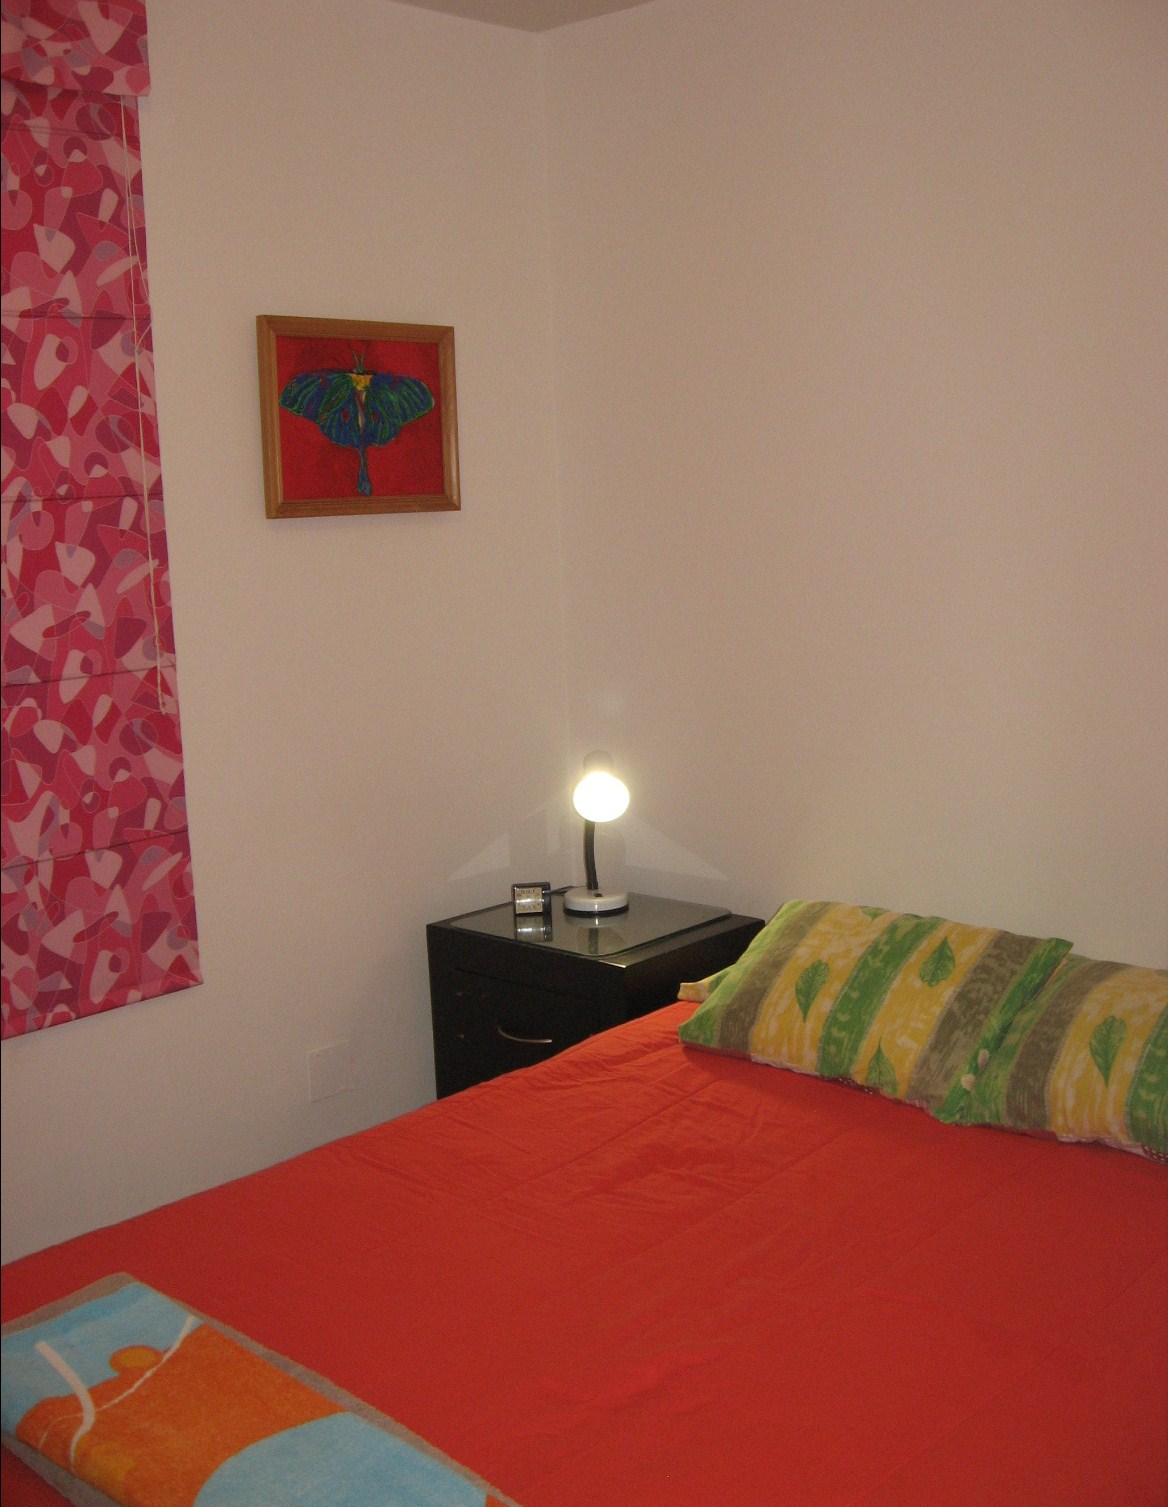 Full size bed, night table, lamp